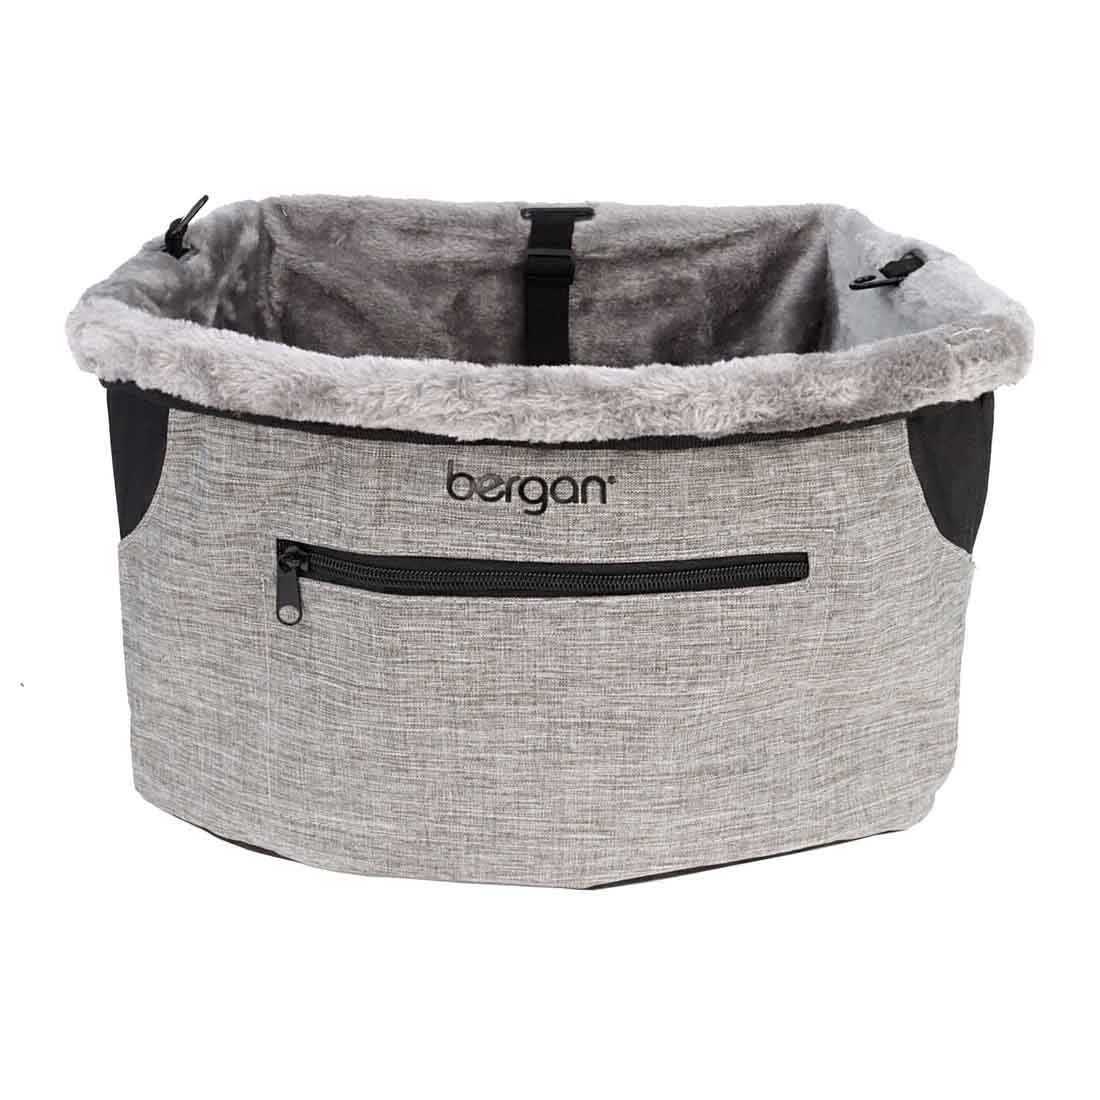 Bergan® Comfort Hanging Dog Booster